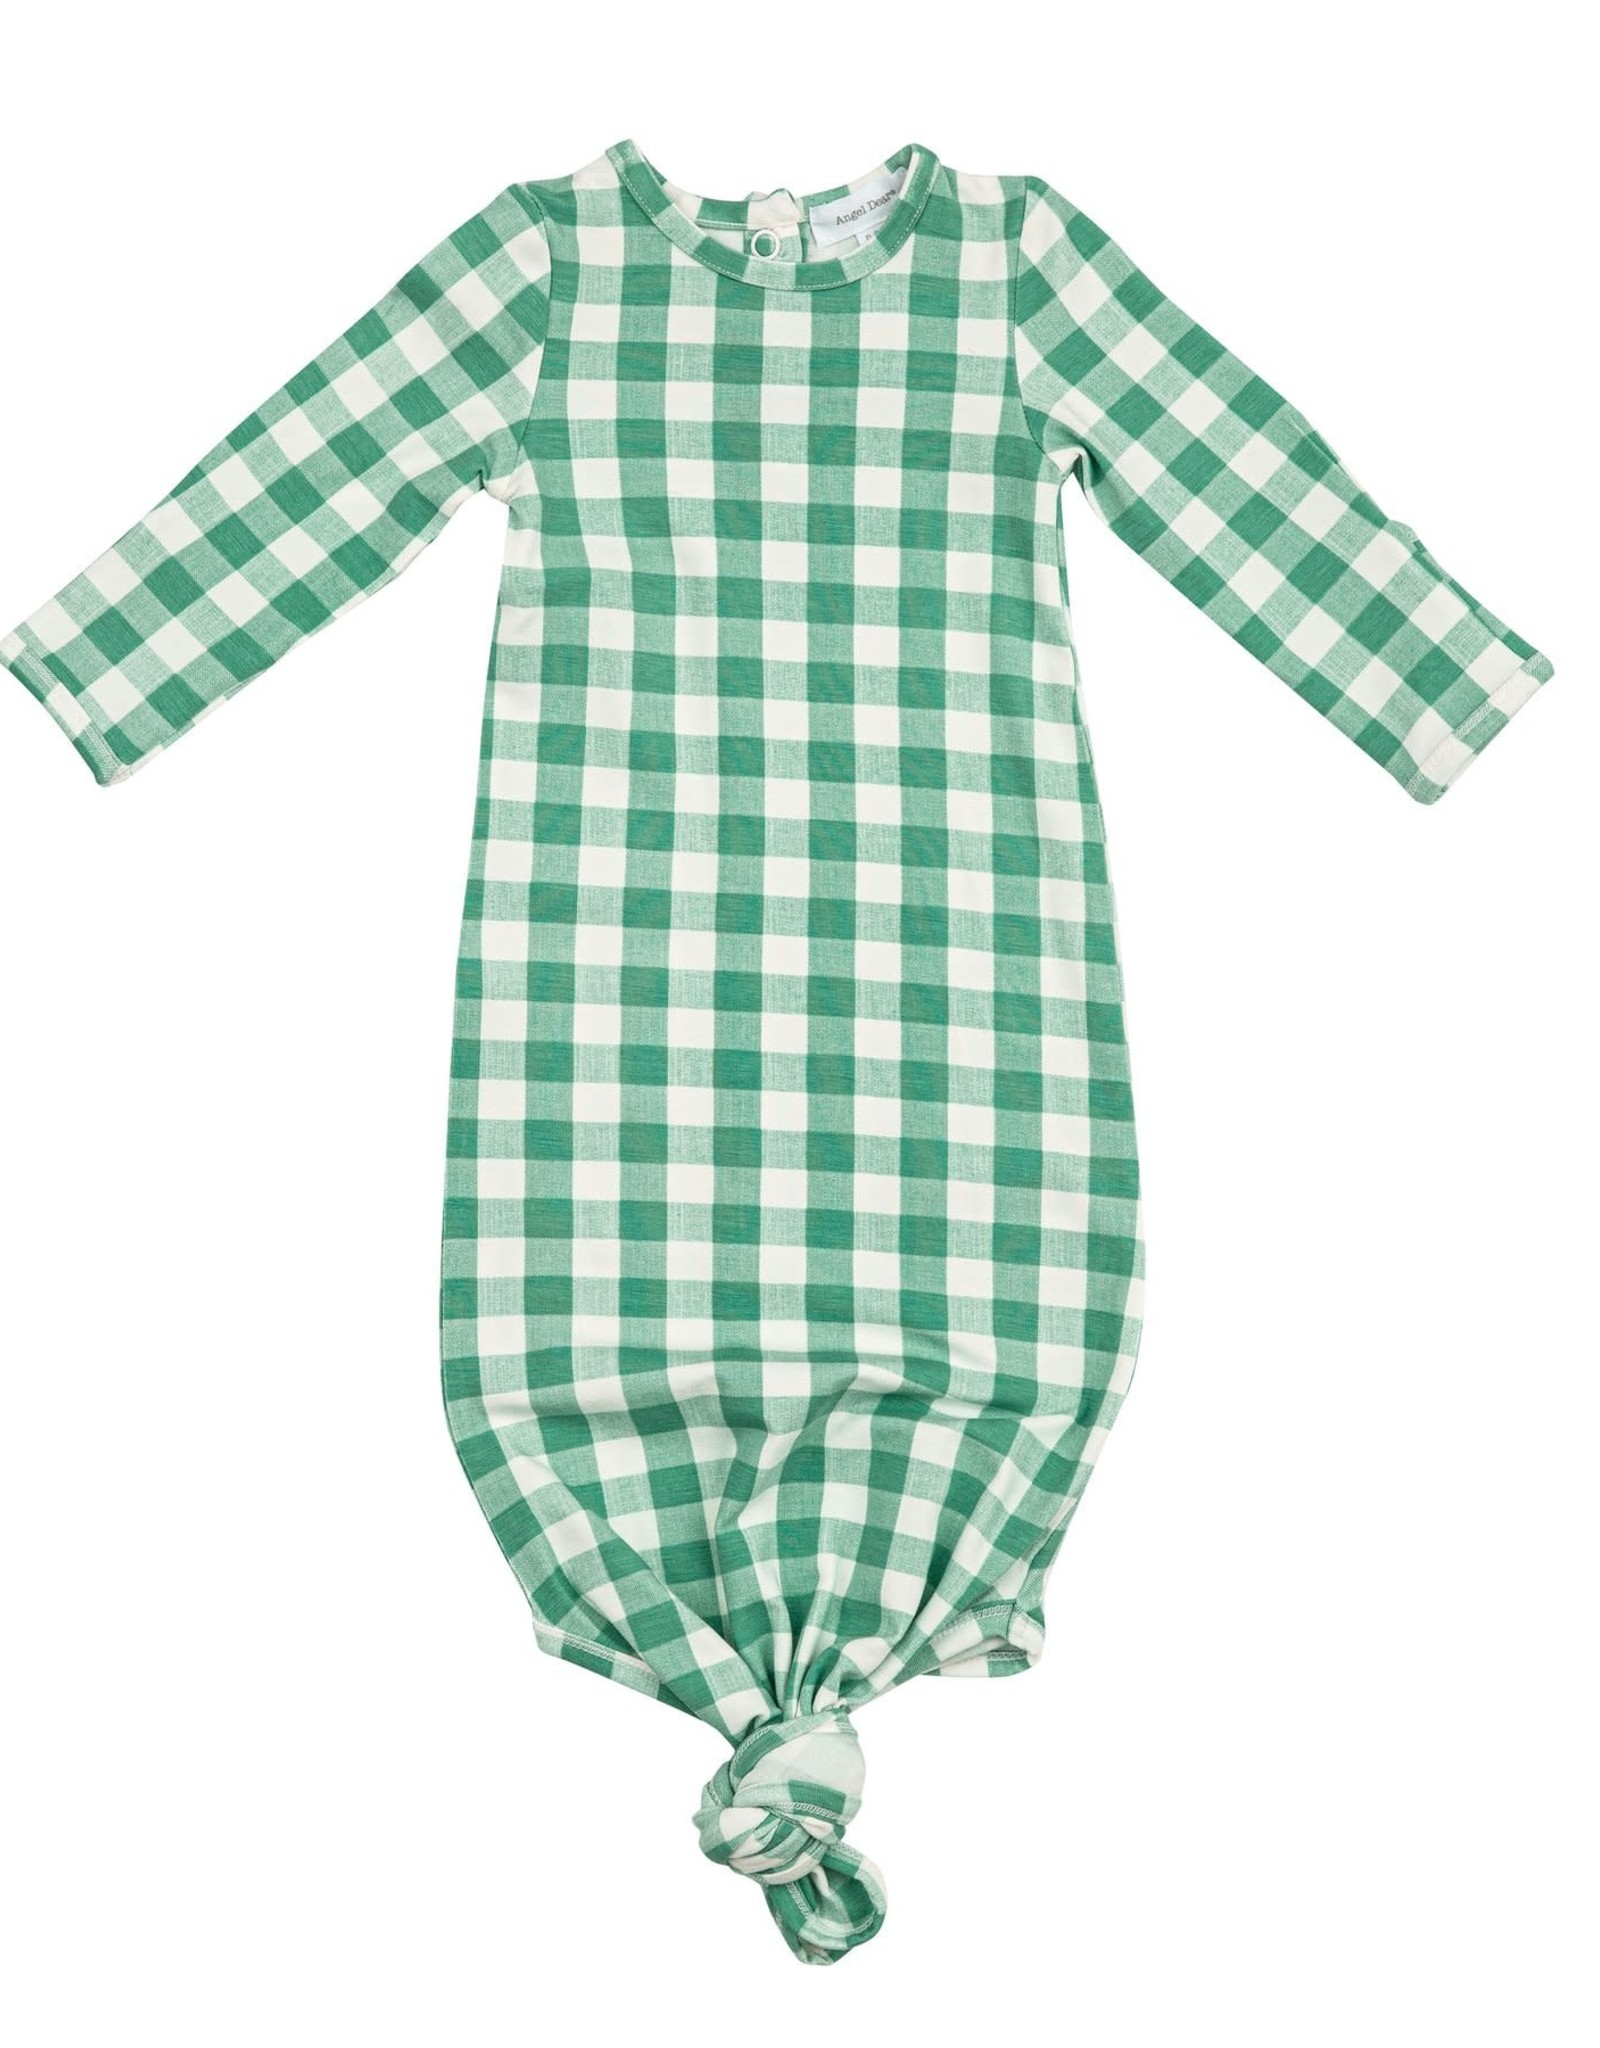 Green gingham Knotted Gown 0-3m